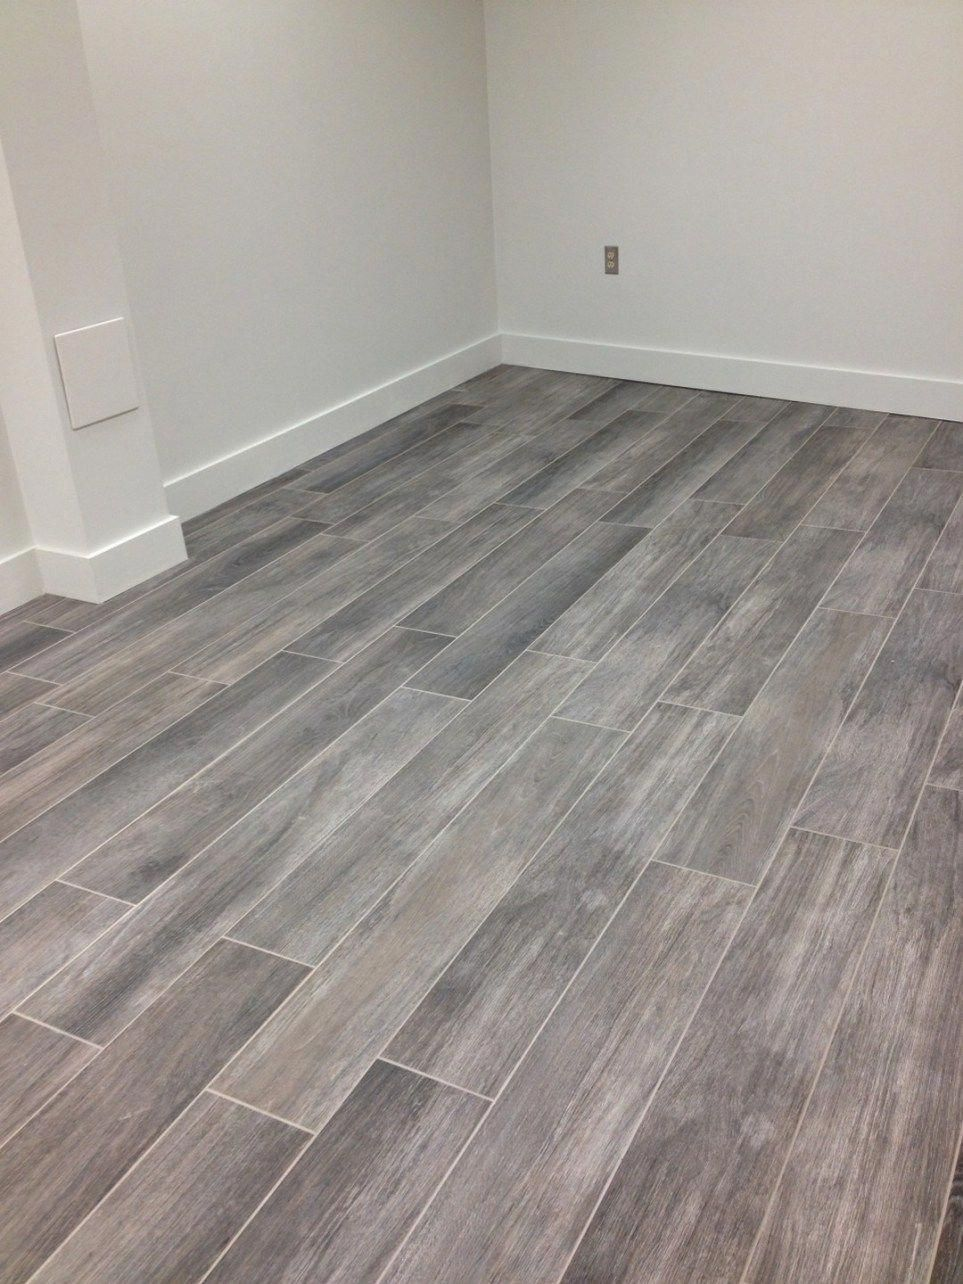 Perfect Color Wood Flooring Ideas 25 Bambooflooring In 2020 Wood Floor Design Gray Wood Tile Flooring Flooring